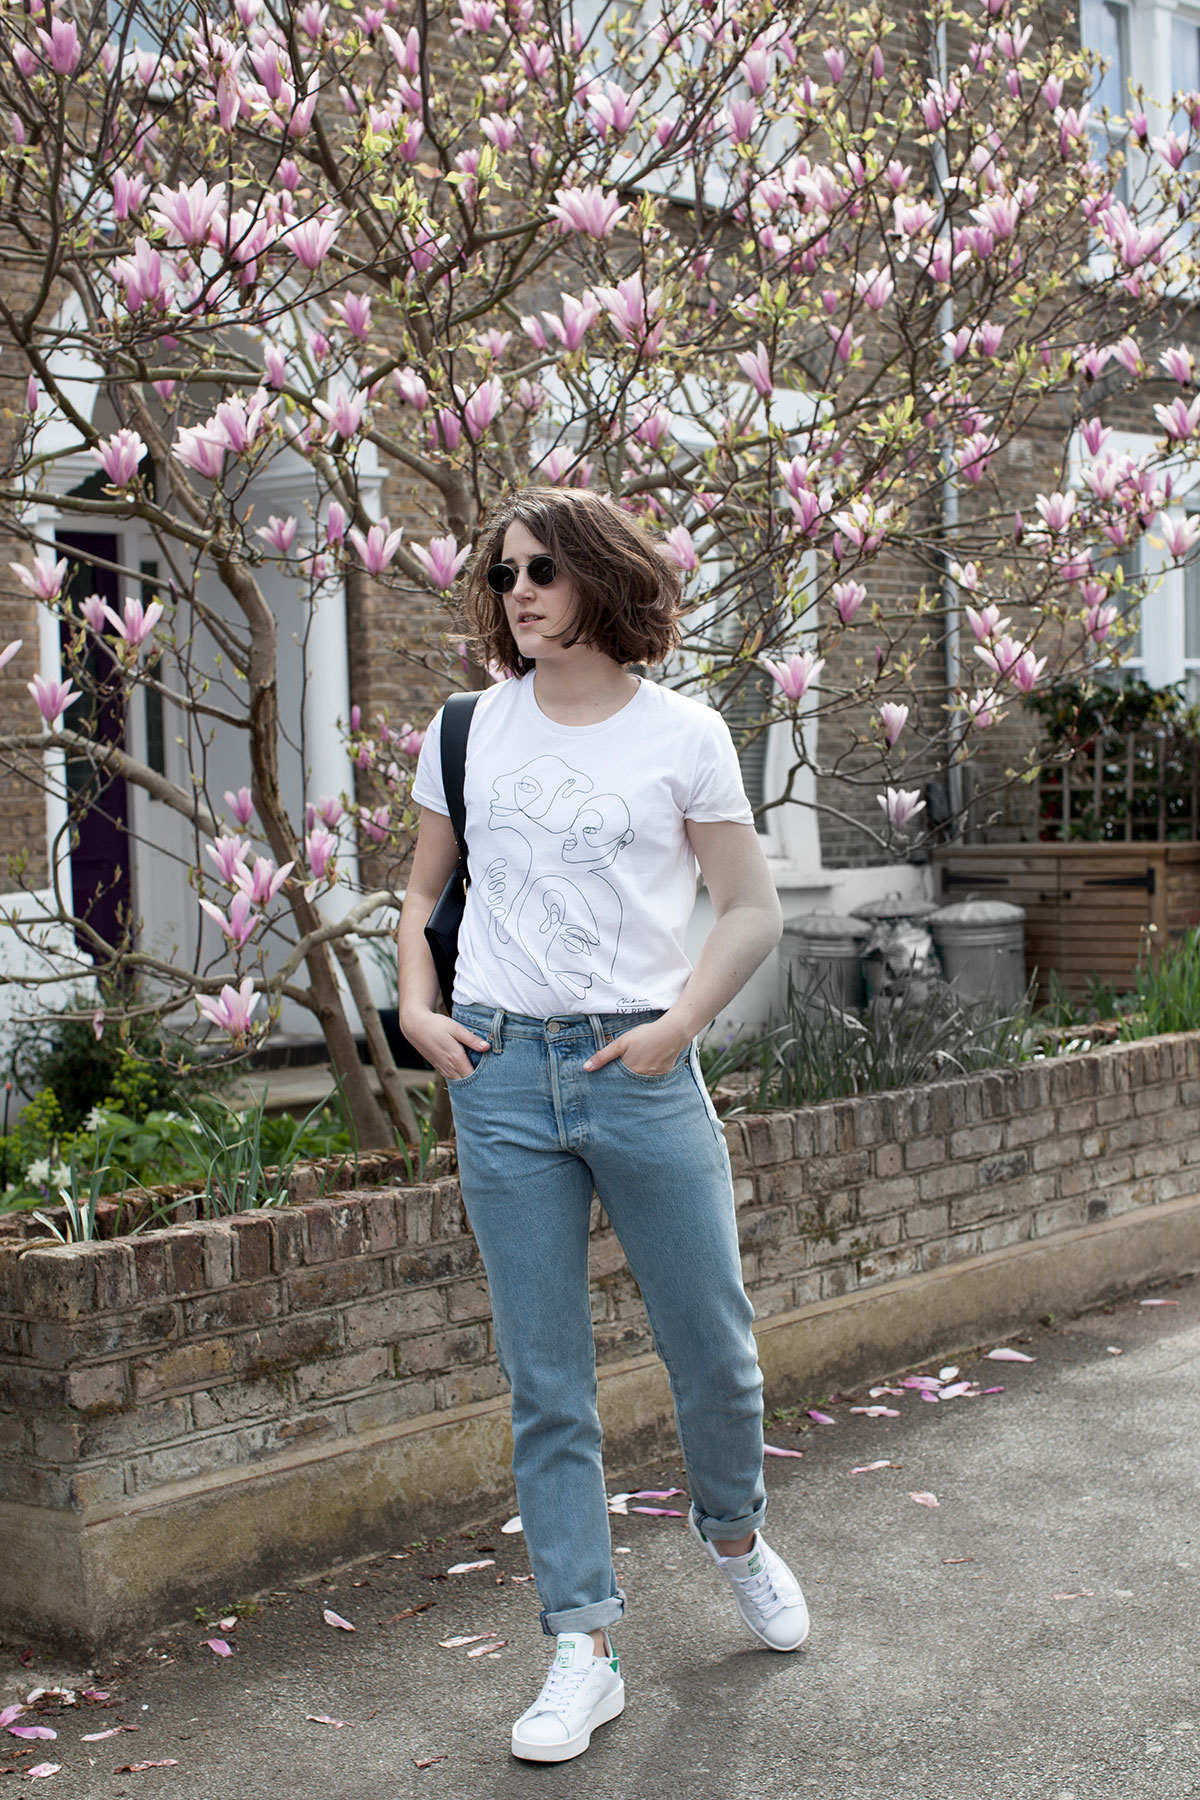 Magnolia-north-london-danielle-foster-LEVIS2